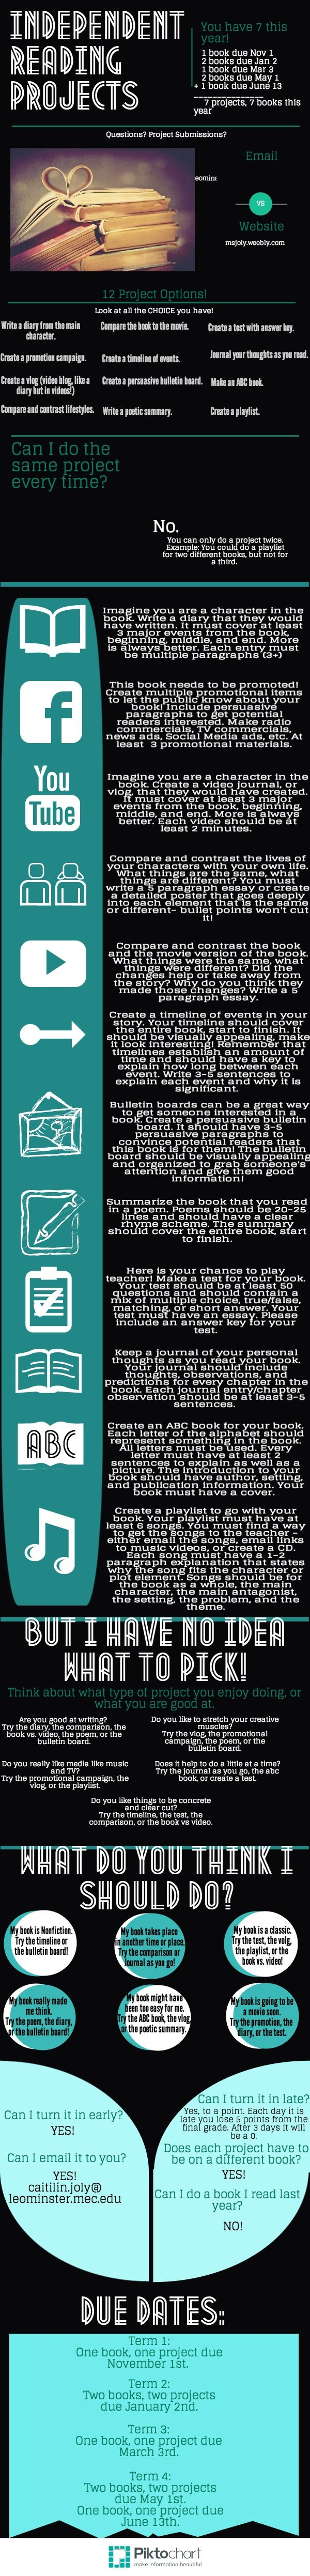 Trying a fun new way to get info to my kids! Independent Reading Projects | @Piktochart Infographic